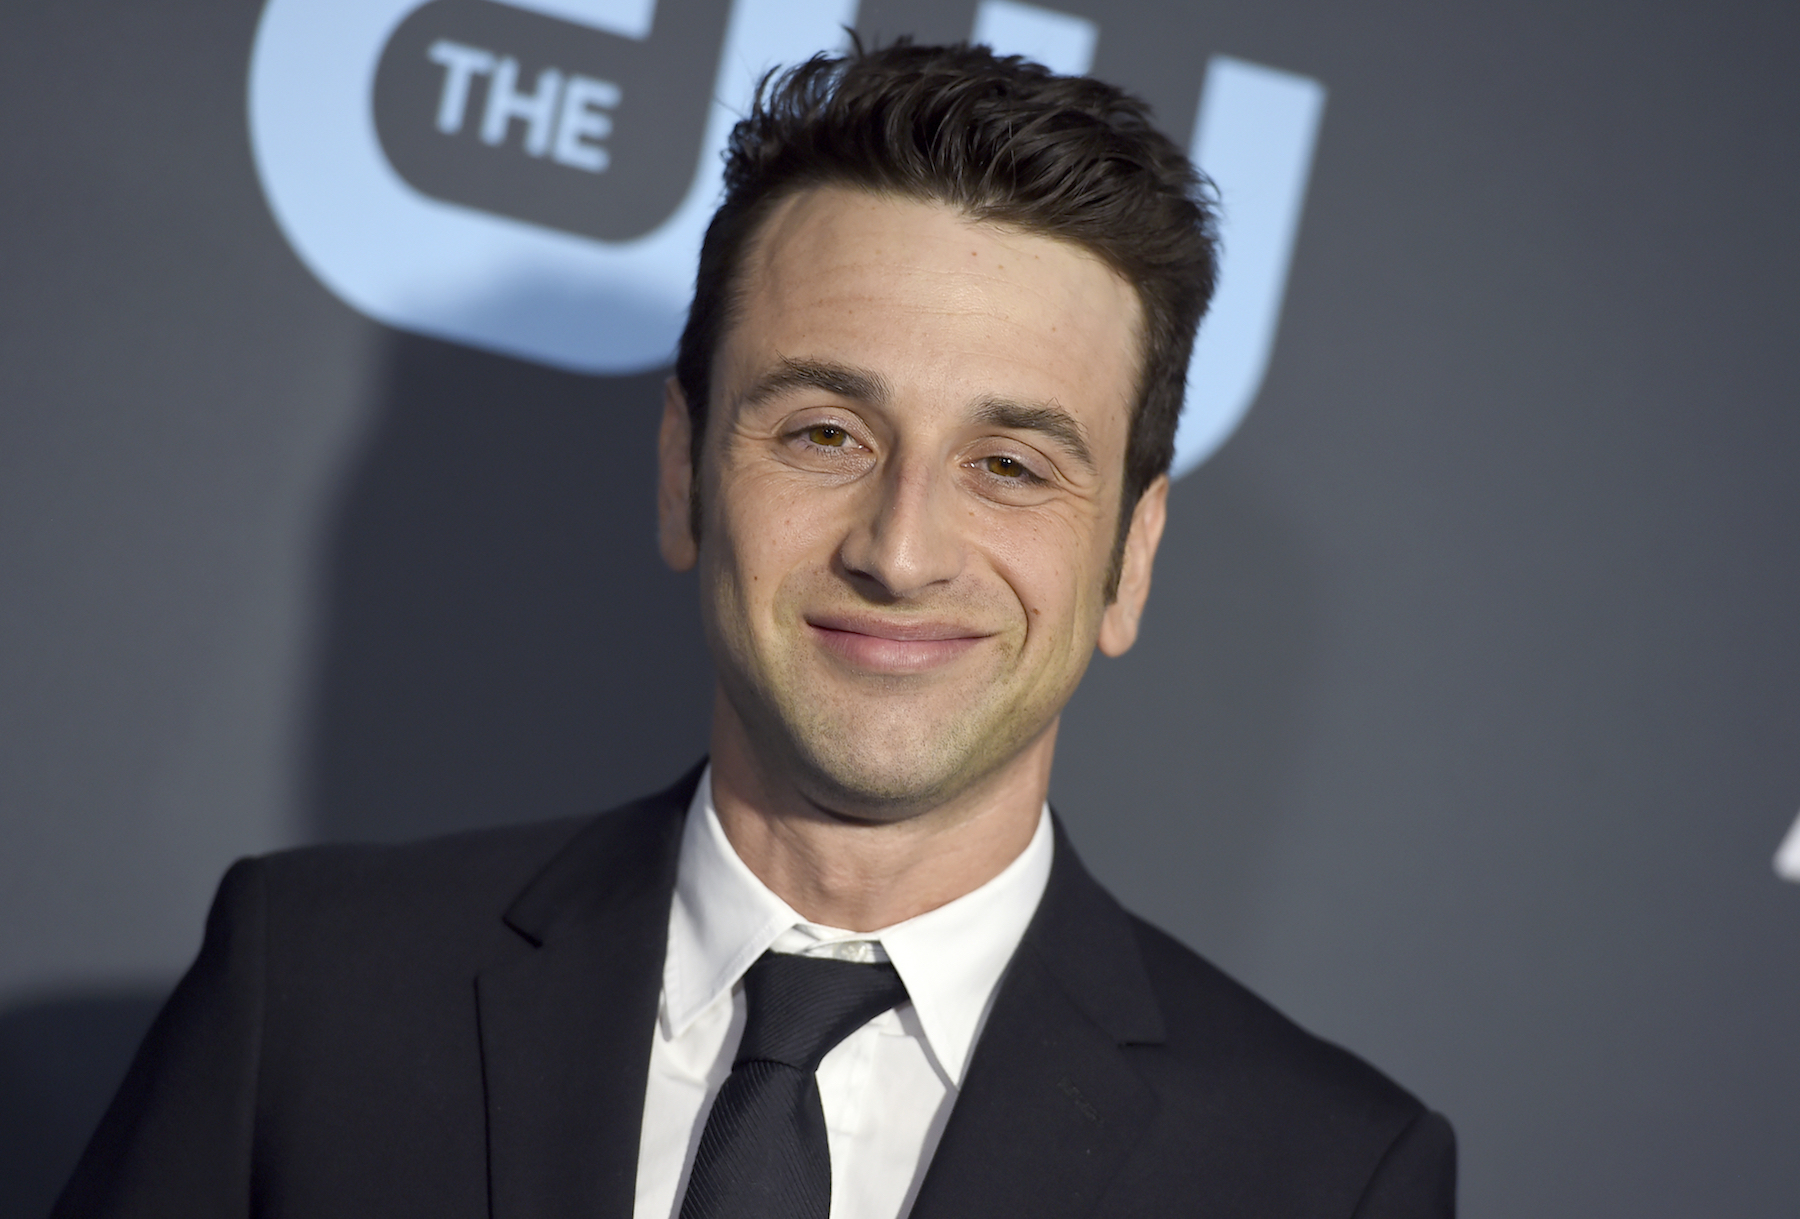 <div class='meta'><div class='origin-logo' data-origin='AP'></div><span class='caption-text' data-credit='Jordan Strauss/Invision/AP'>Justin Hurwitz arrives at the 24th annual Critics' Choice Awards on Sunday, Jan. 13, 2019, at the Barker Hangar in Santa Monica, Calif.</span></div>